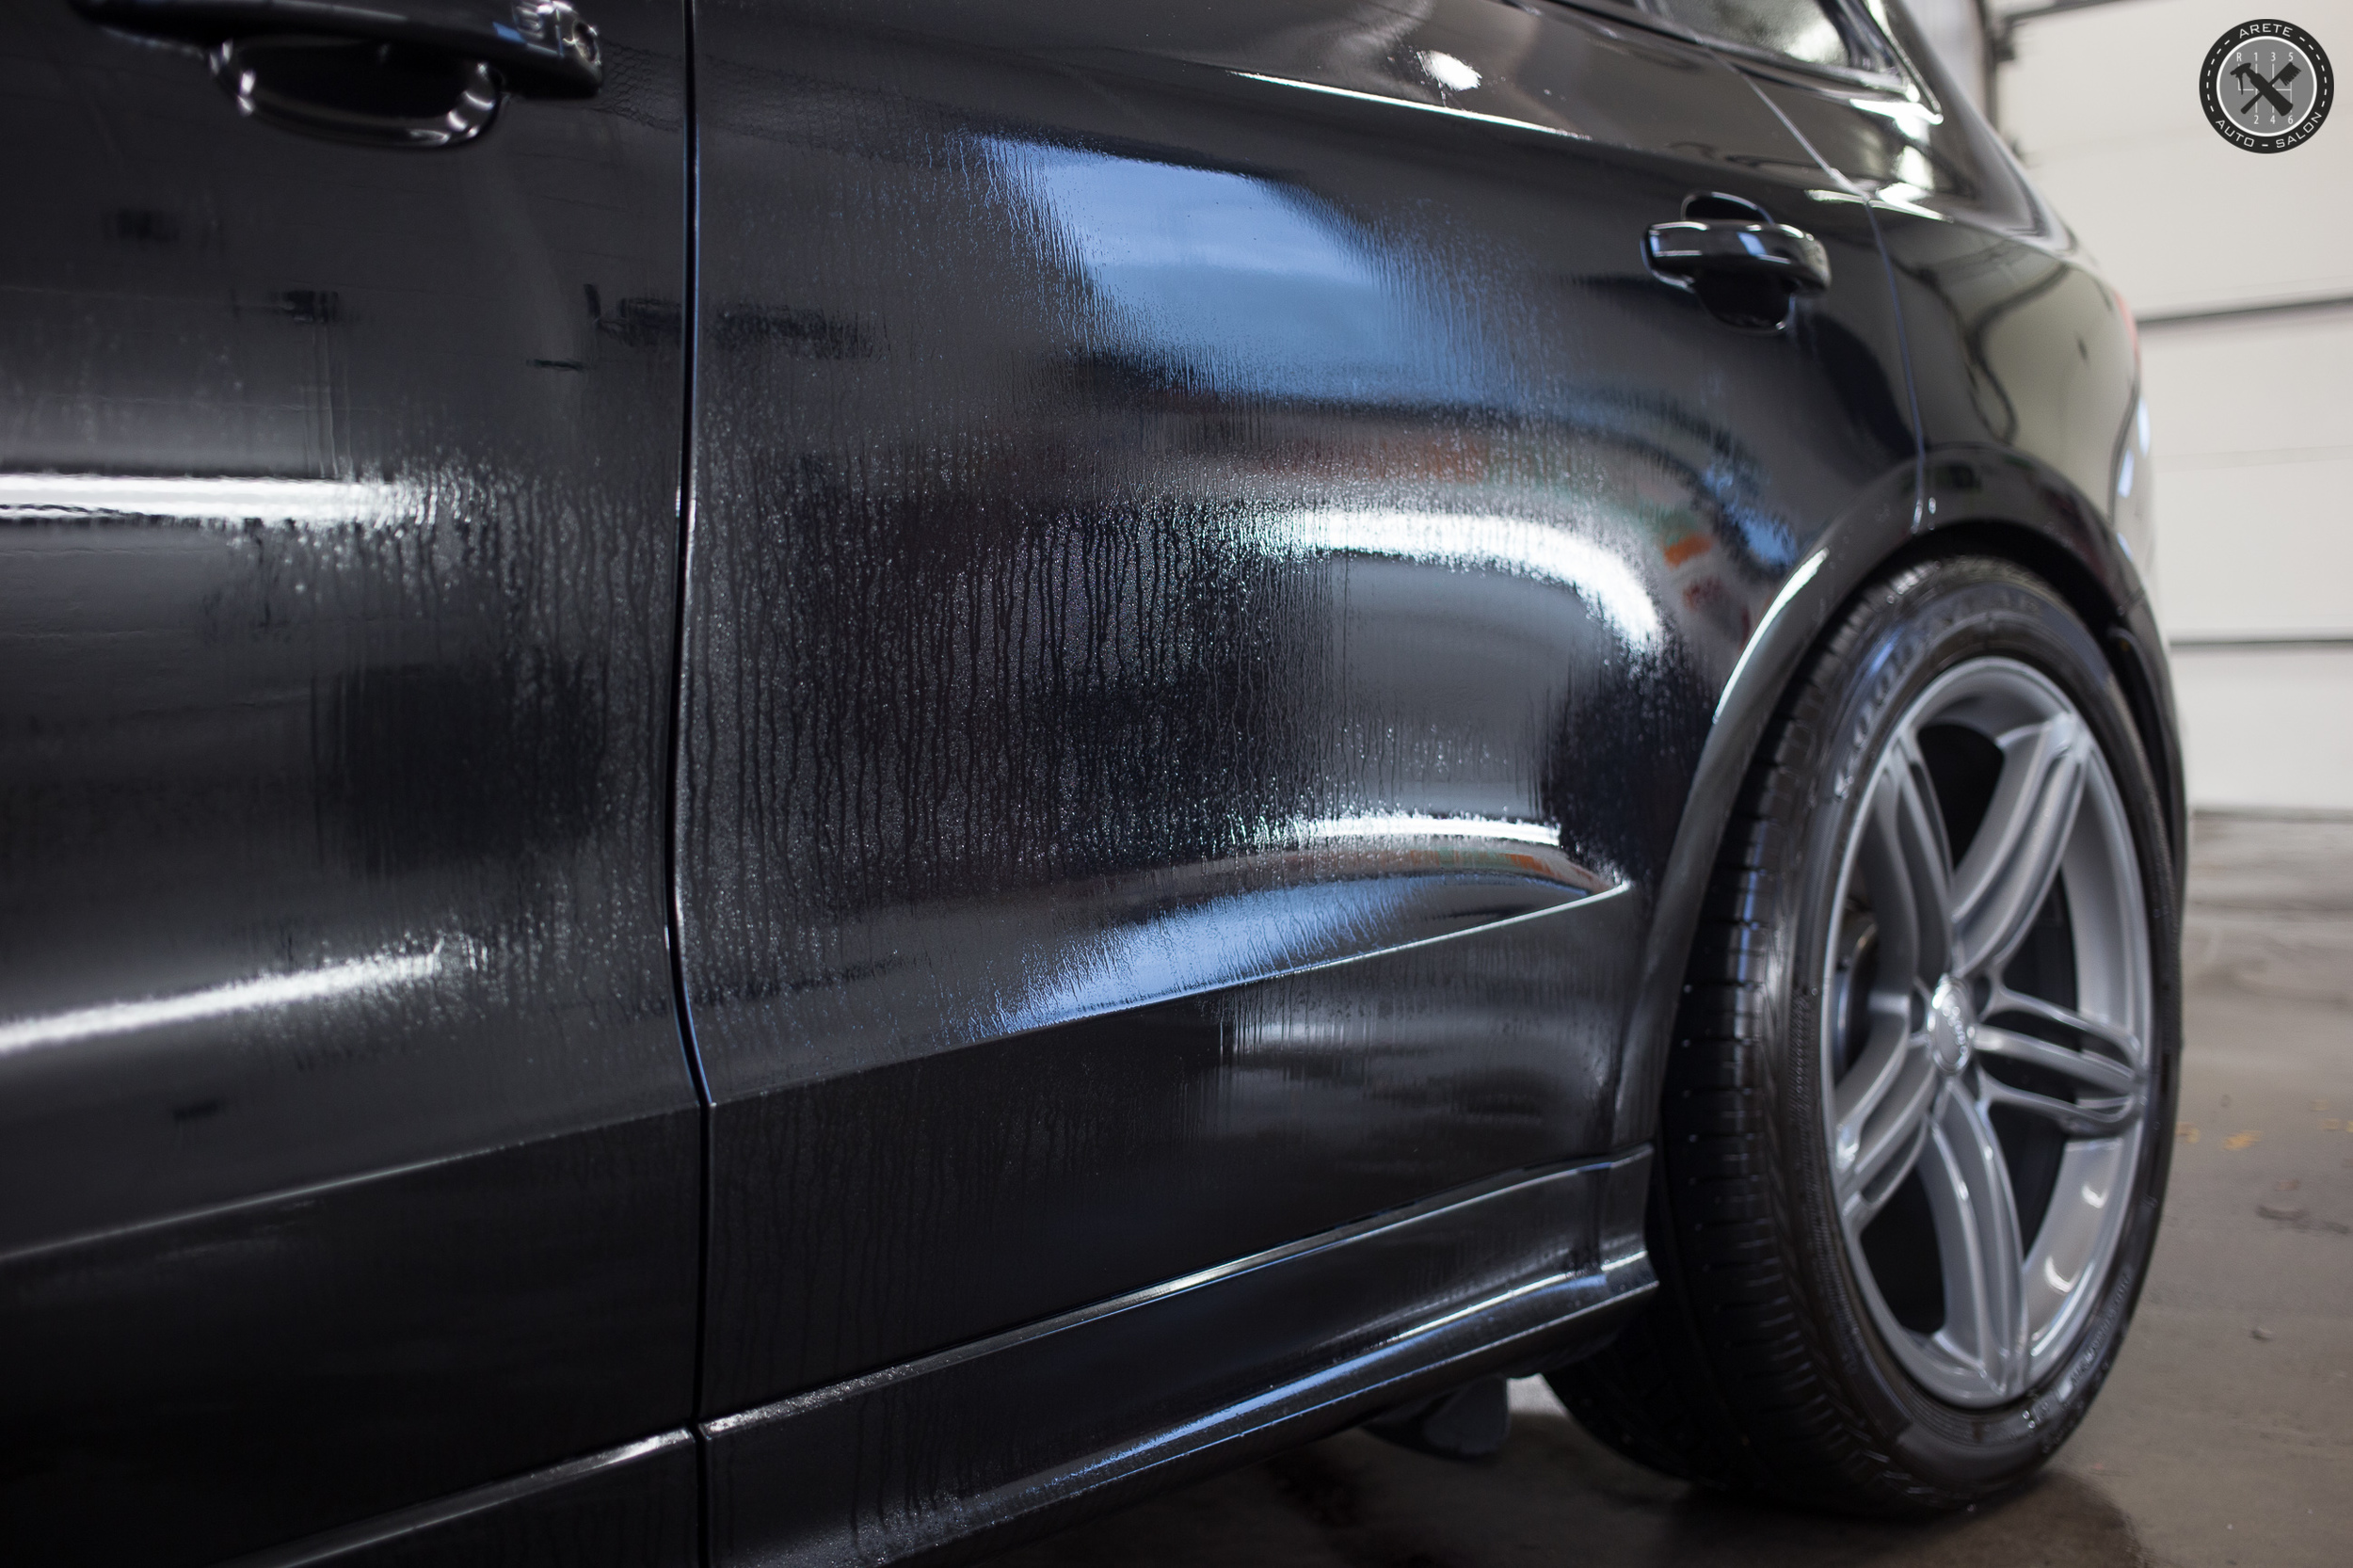 After our initial wash the vehicle was treated with an iron removing chemical to extract ferrous metals and loosen organic contamination.